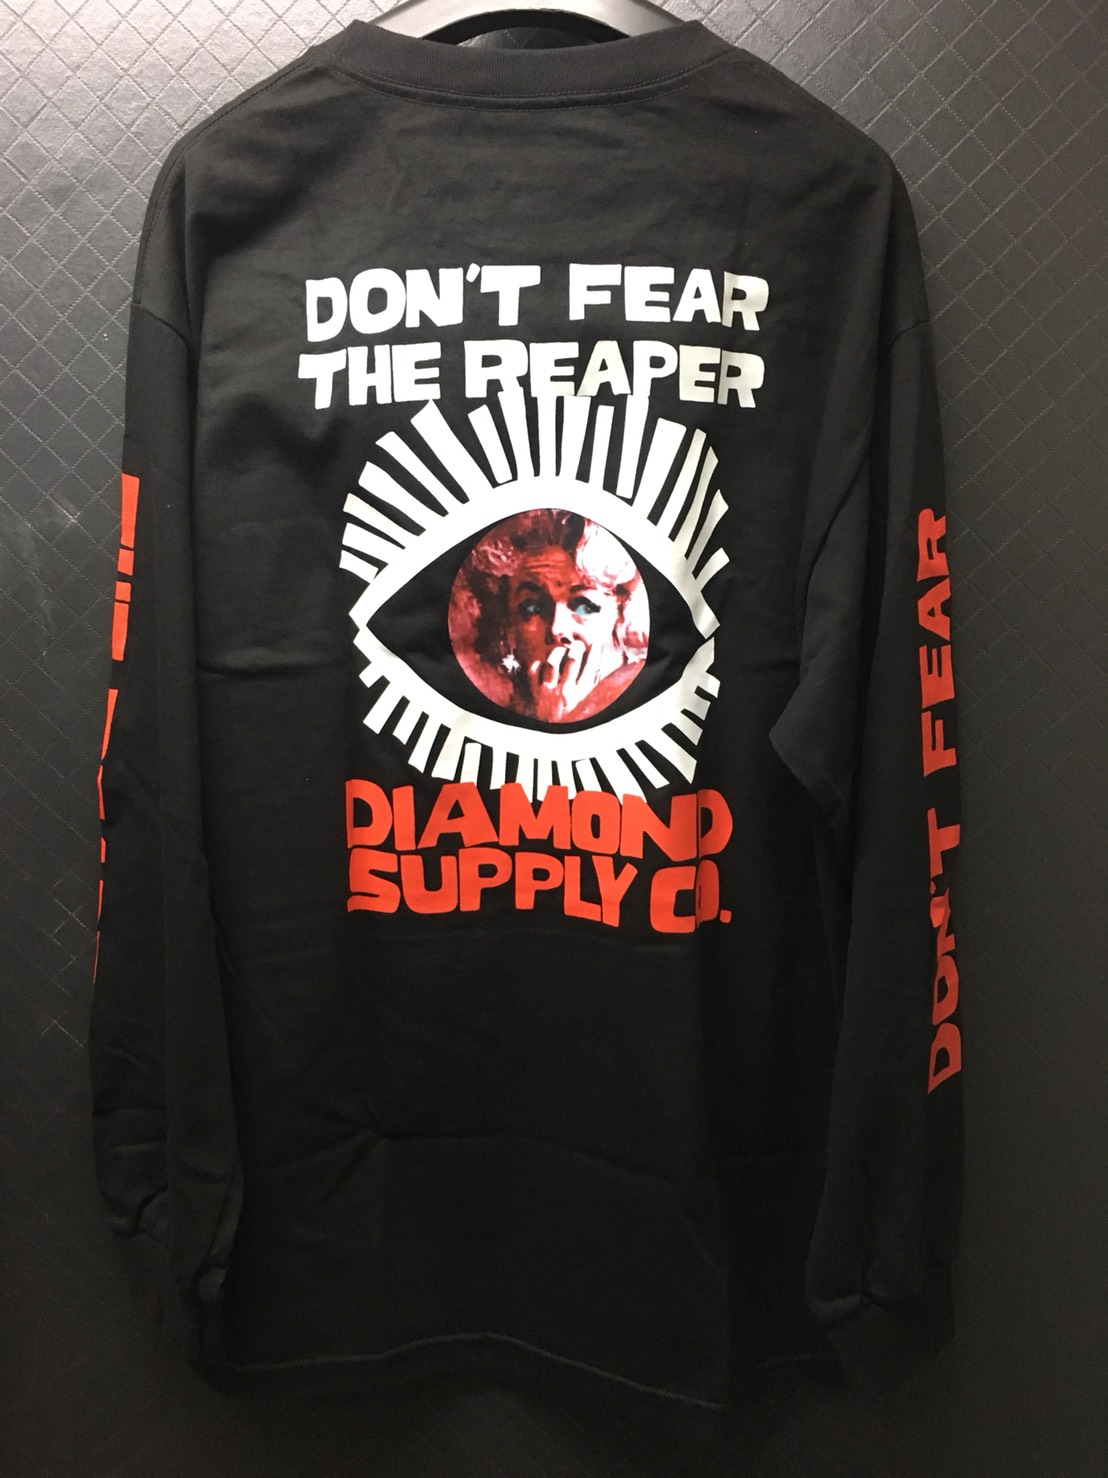 Diamond Supply, Reaper L/S Shirt - Black